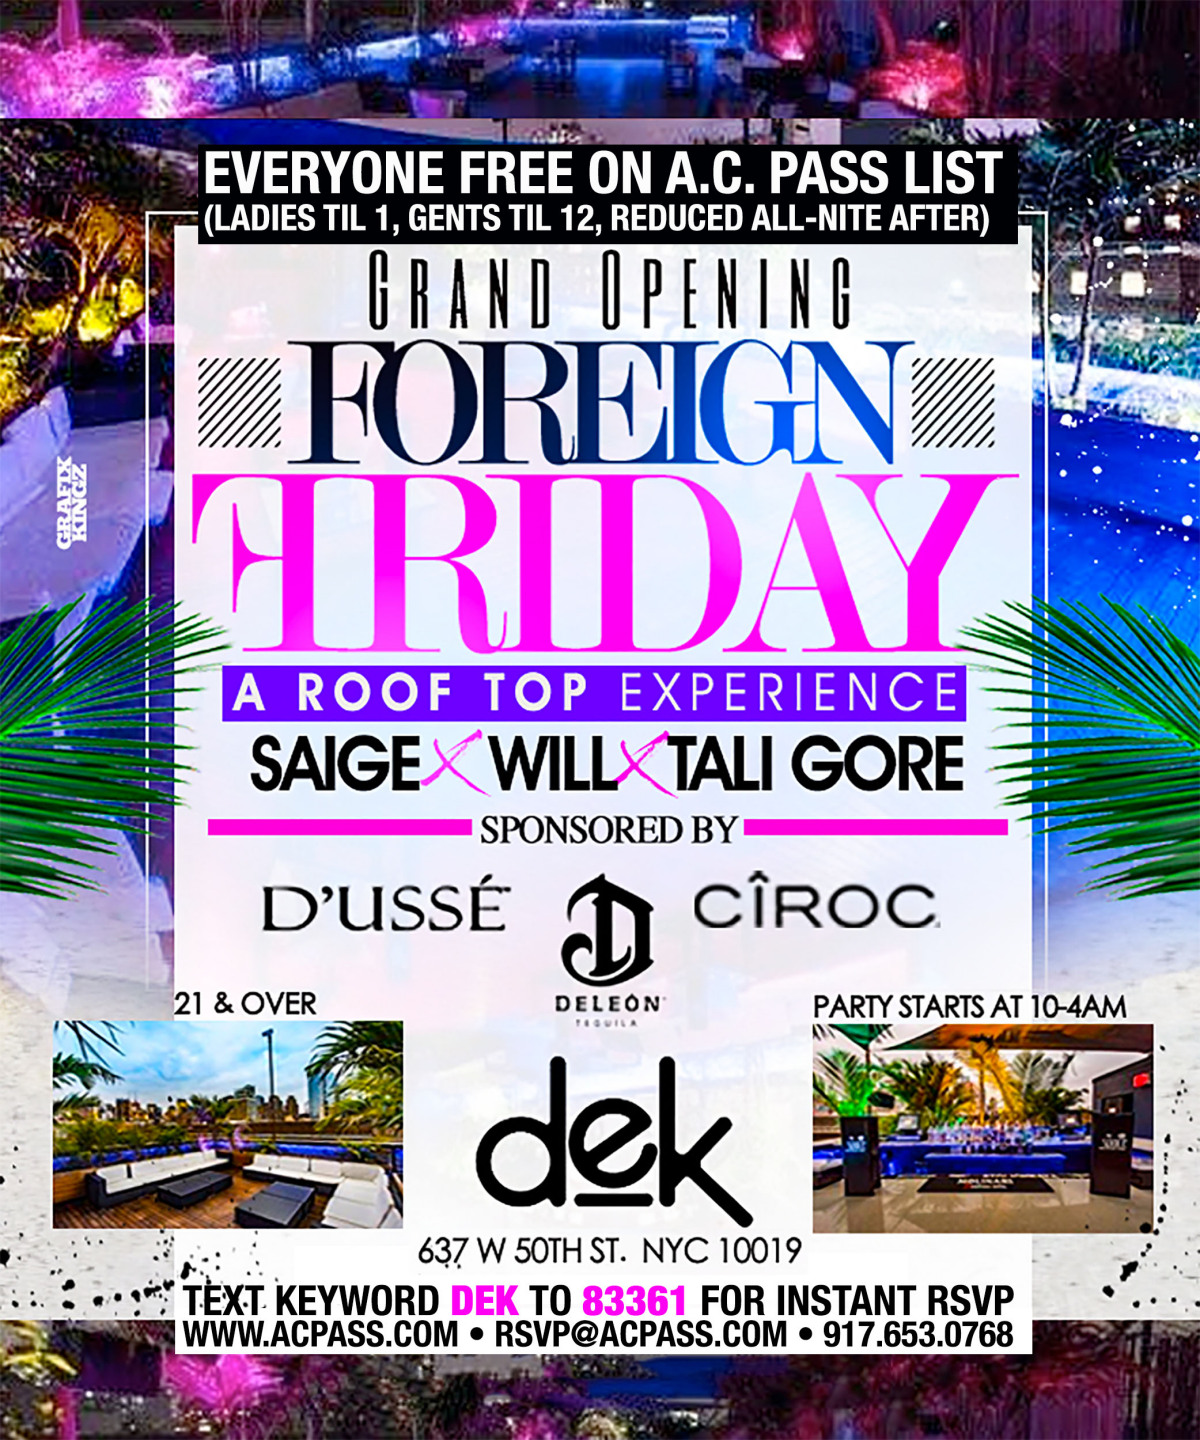 FOREIGN Fridays, Free on the A C  Pass List - New York Events